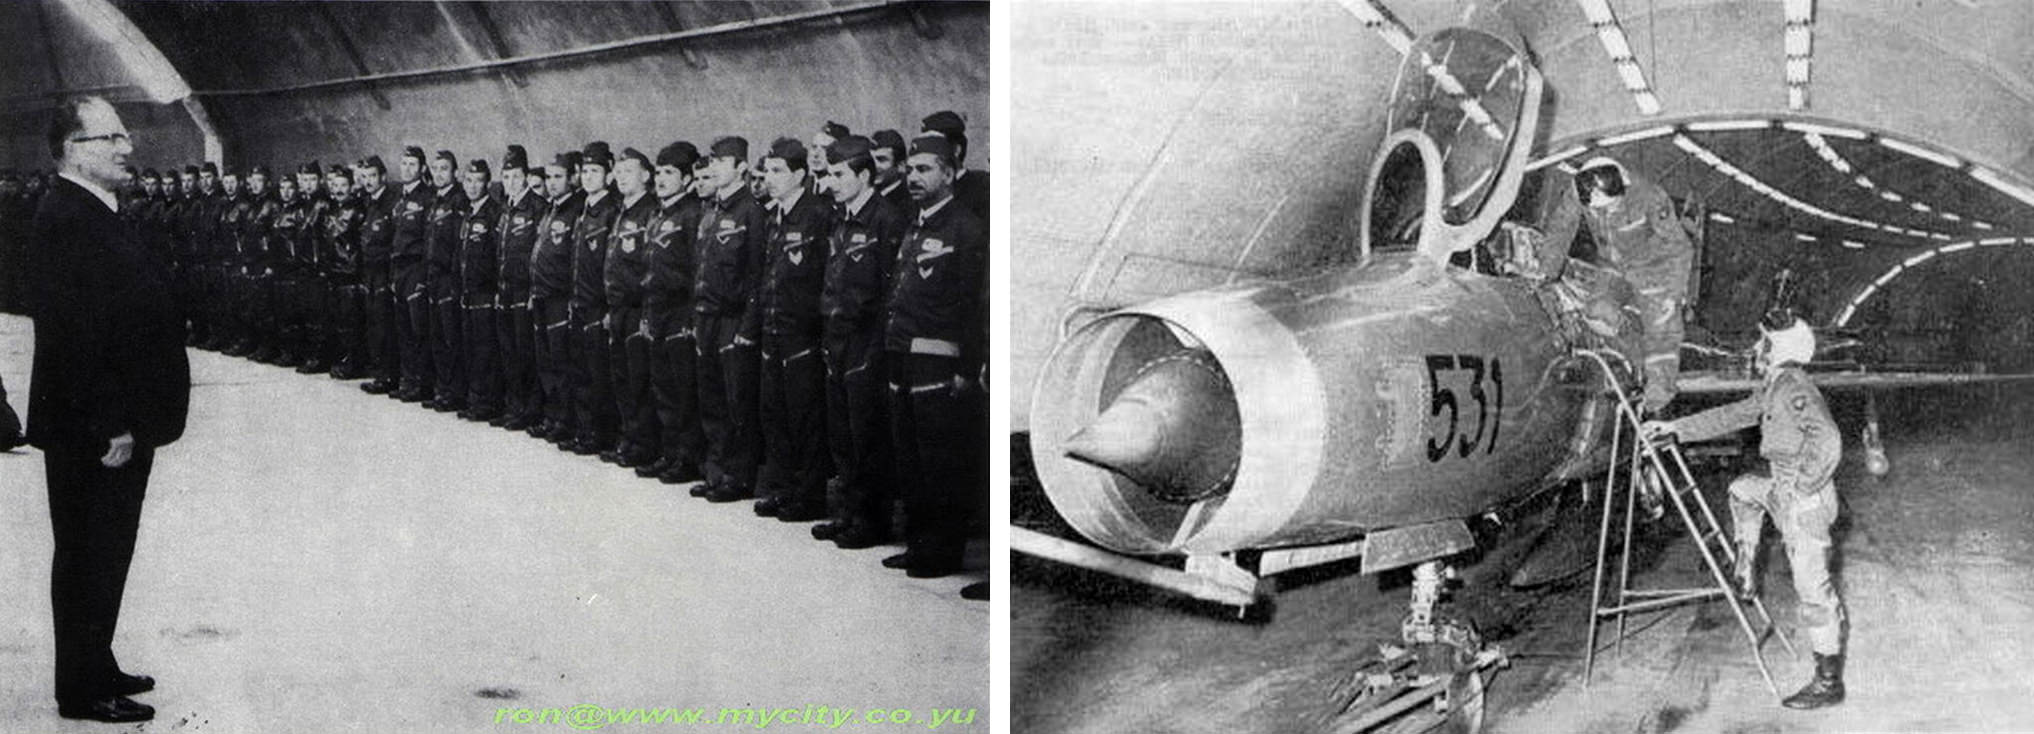 Left: President Tito addresses pilots inside the KLEK facility during a visit in 1969. Right: MiG-21 inside Entrance 1, 1970s.